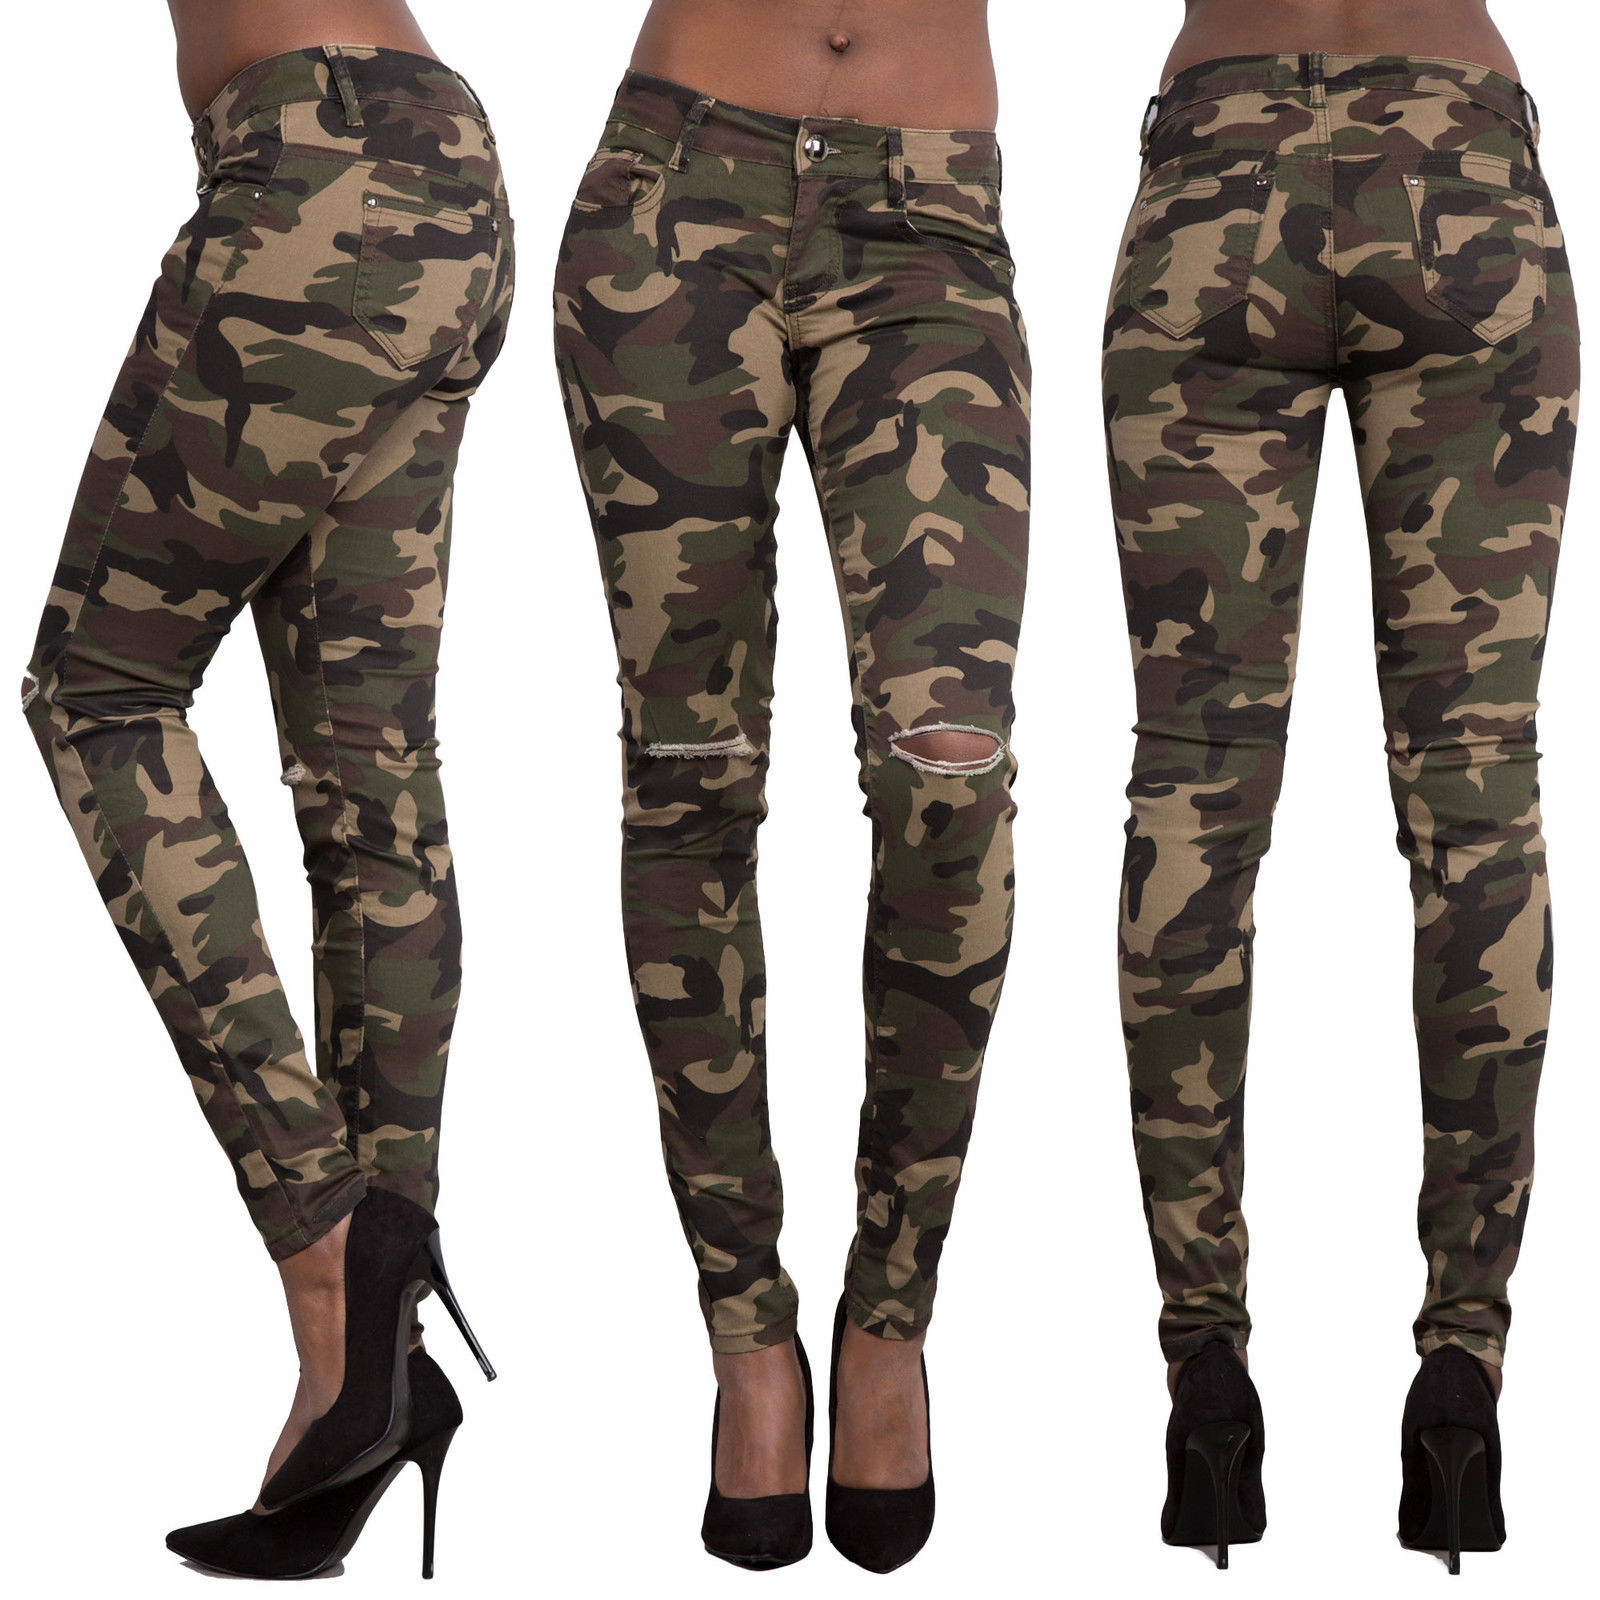 New Camouflage Military Pants Women Slim Fit Female Jogger Pants Ladies Fitness Workout Trousers Wdc1265 Buy At The Price Of 7 48 In Aliexpress Com Imall Com There are 50666 military women for sale on etsy, and they cost €70.36 on average. new camouflage military pants women